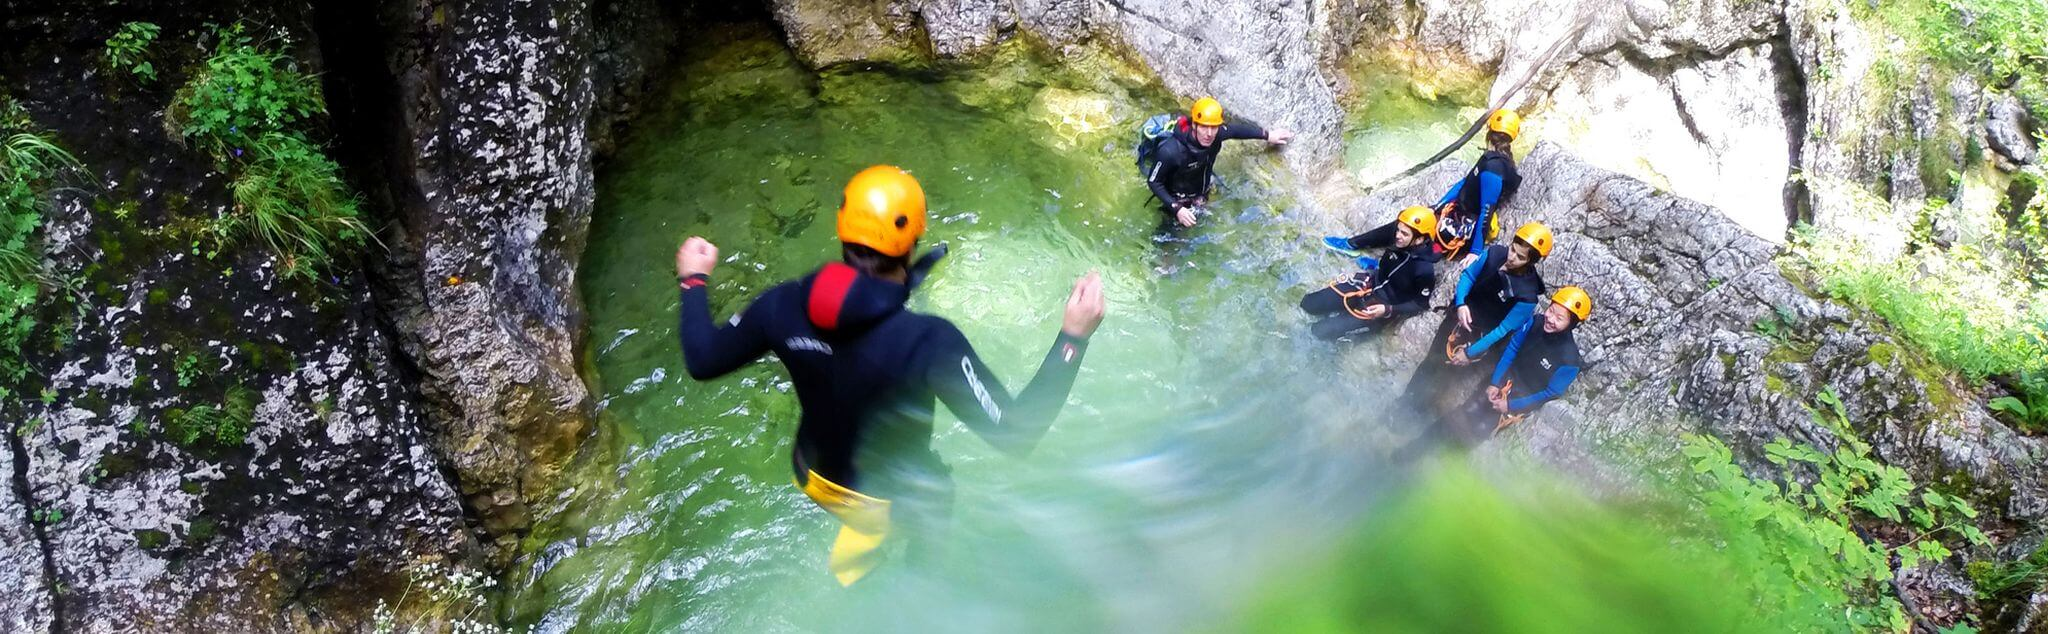 Canyoning in Cornwall